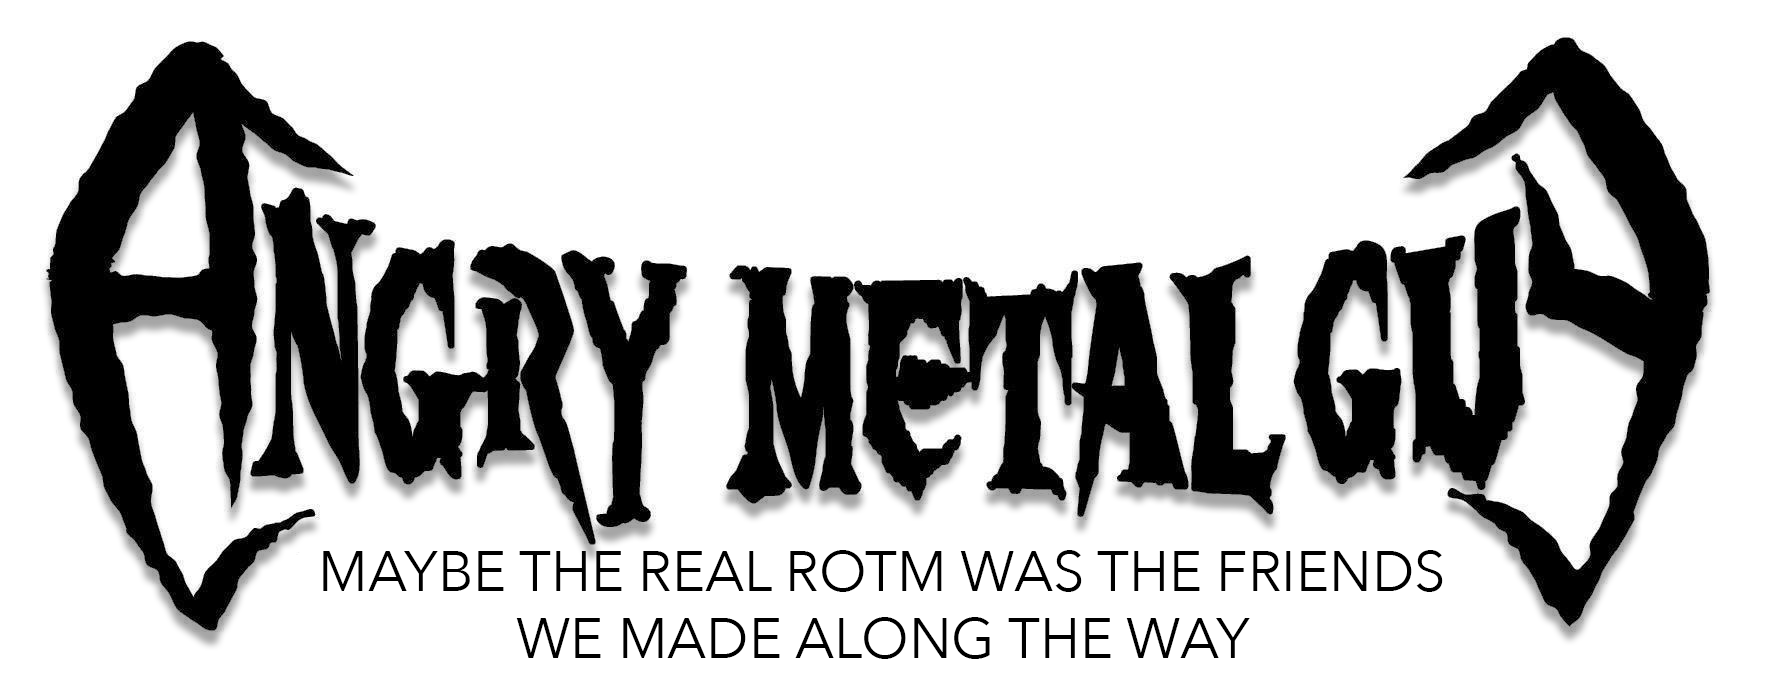 Angry Metal Guy